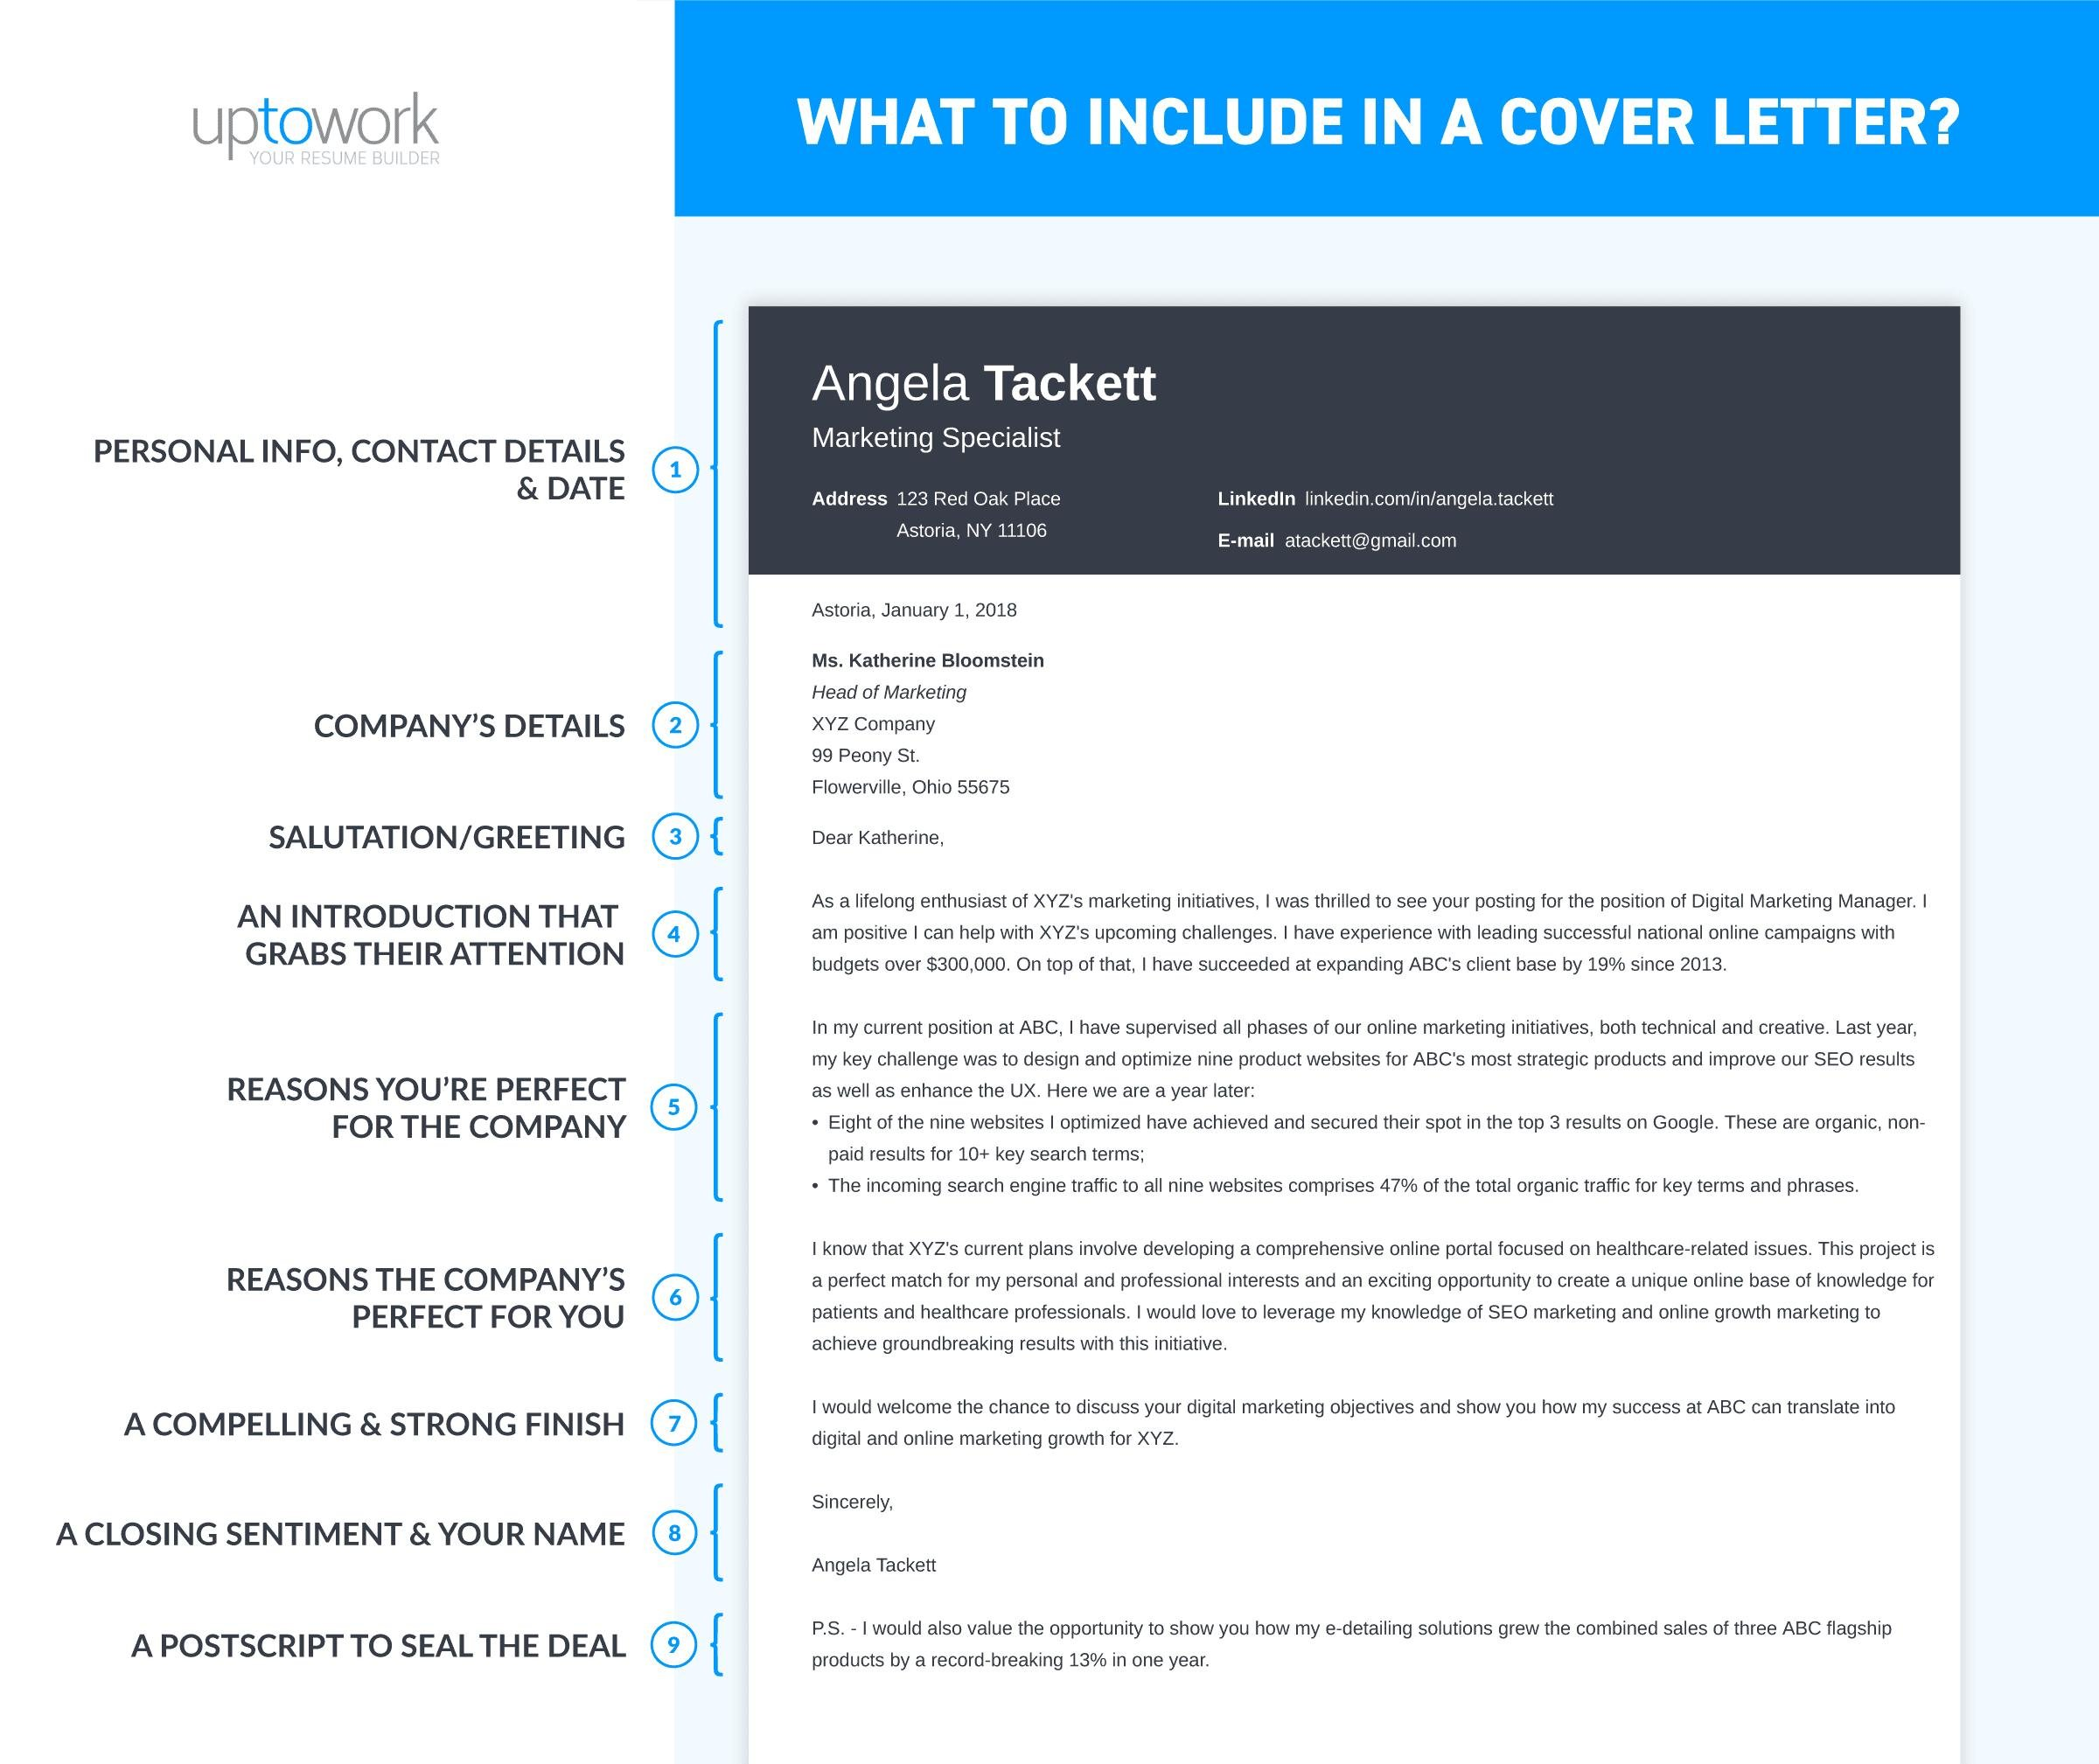 to include in cover letter goes create for your resume director format university Resume Create A Cover Letter For Your Resume Online